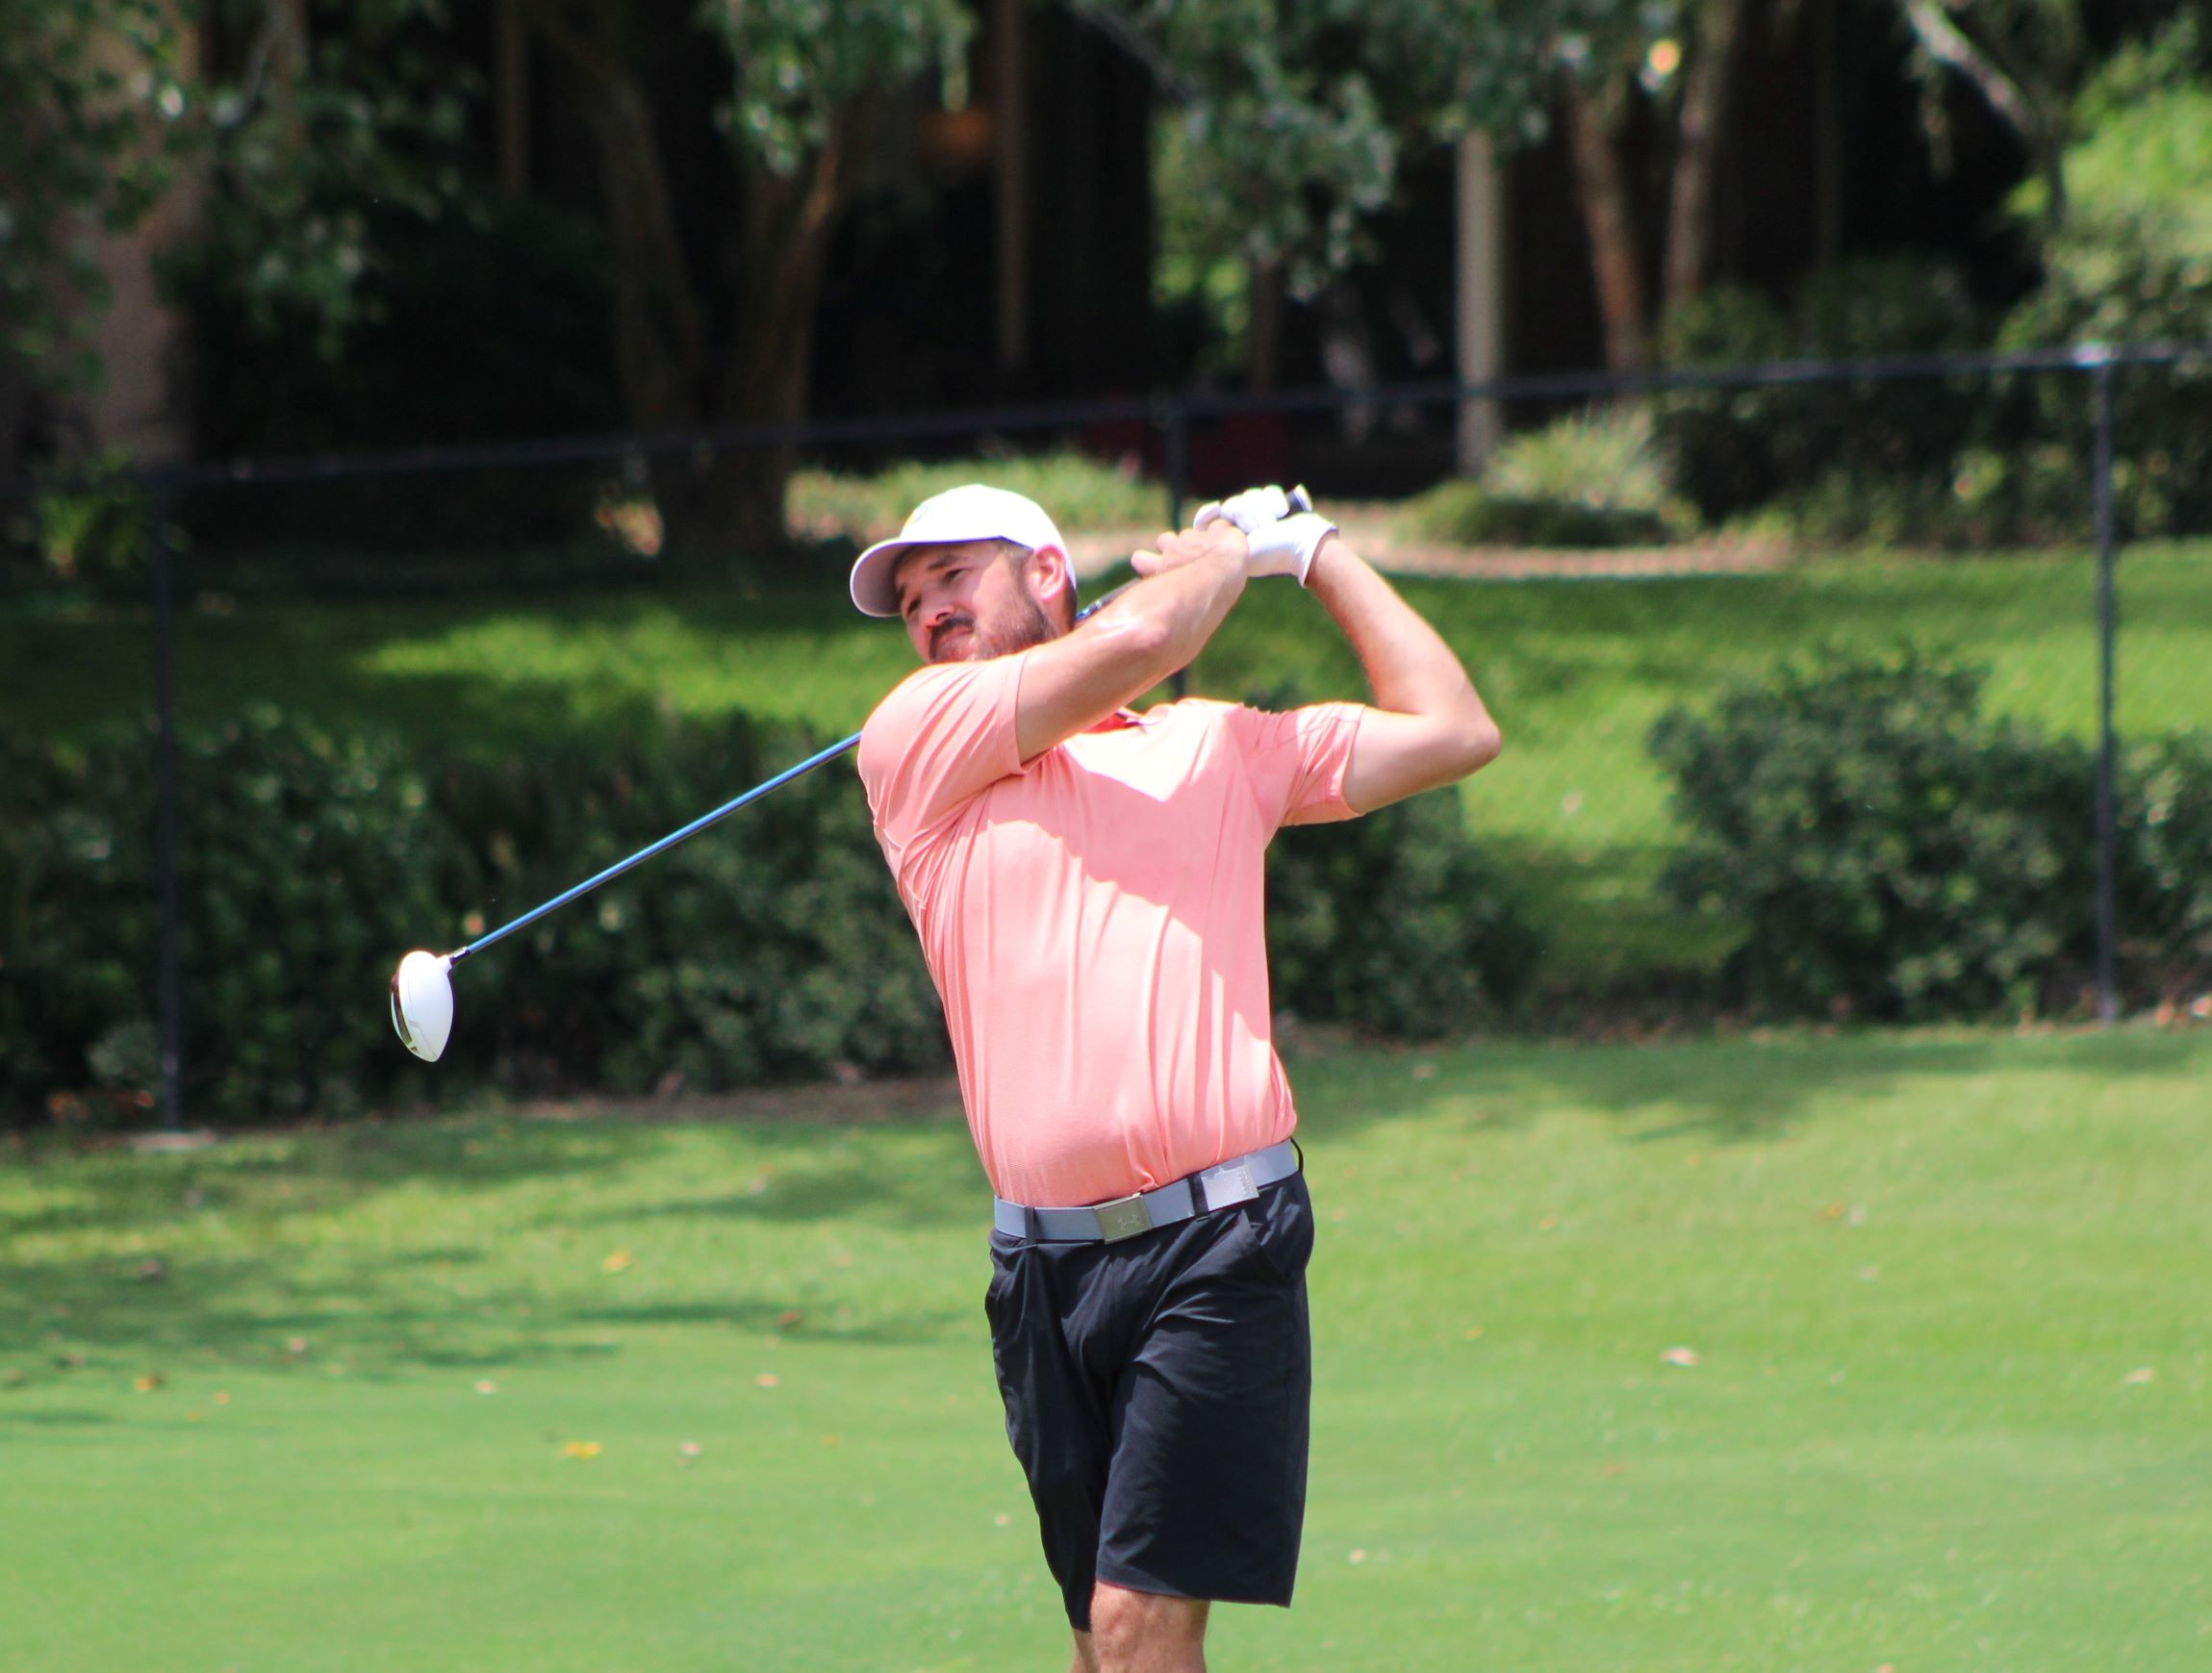 John Humphries Leads 100th Louisiana Amateur Championship Following Third Round Play